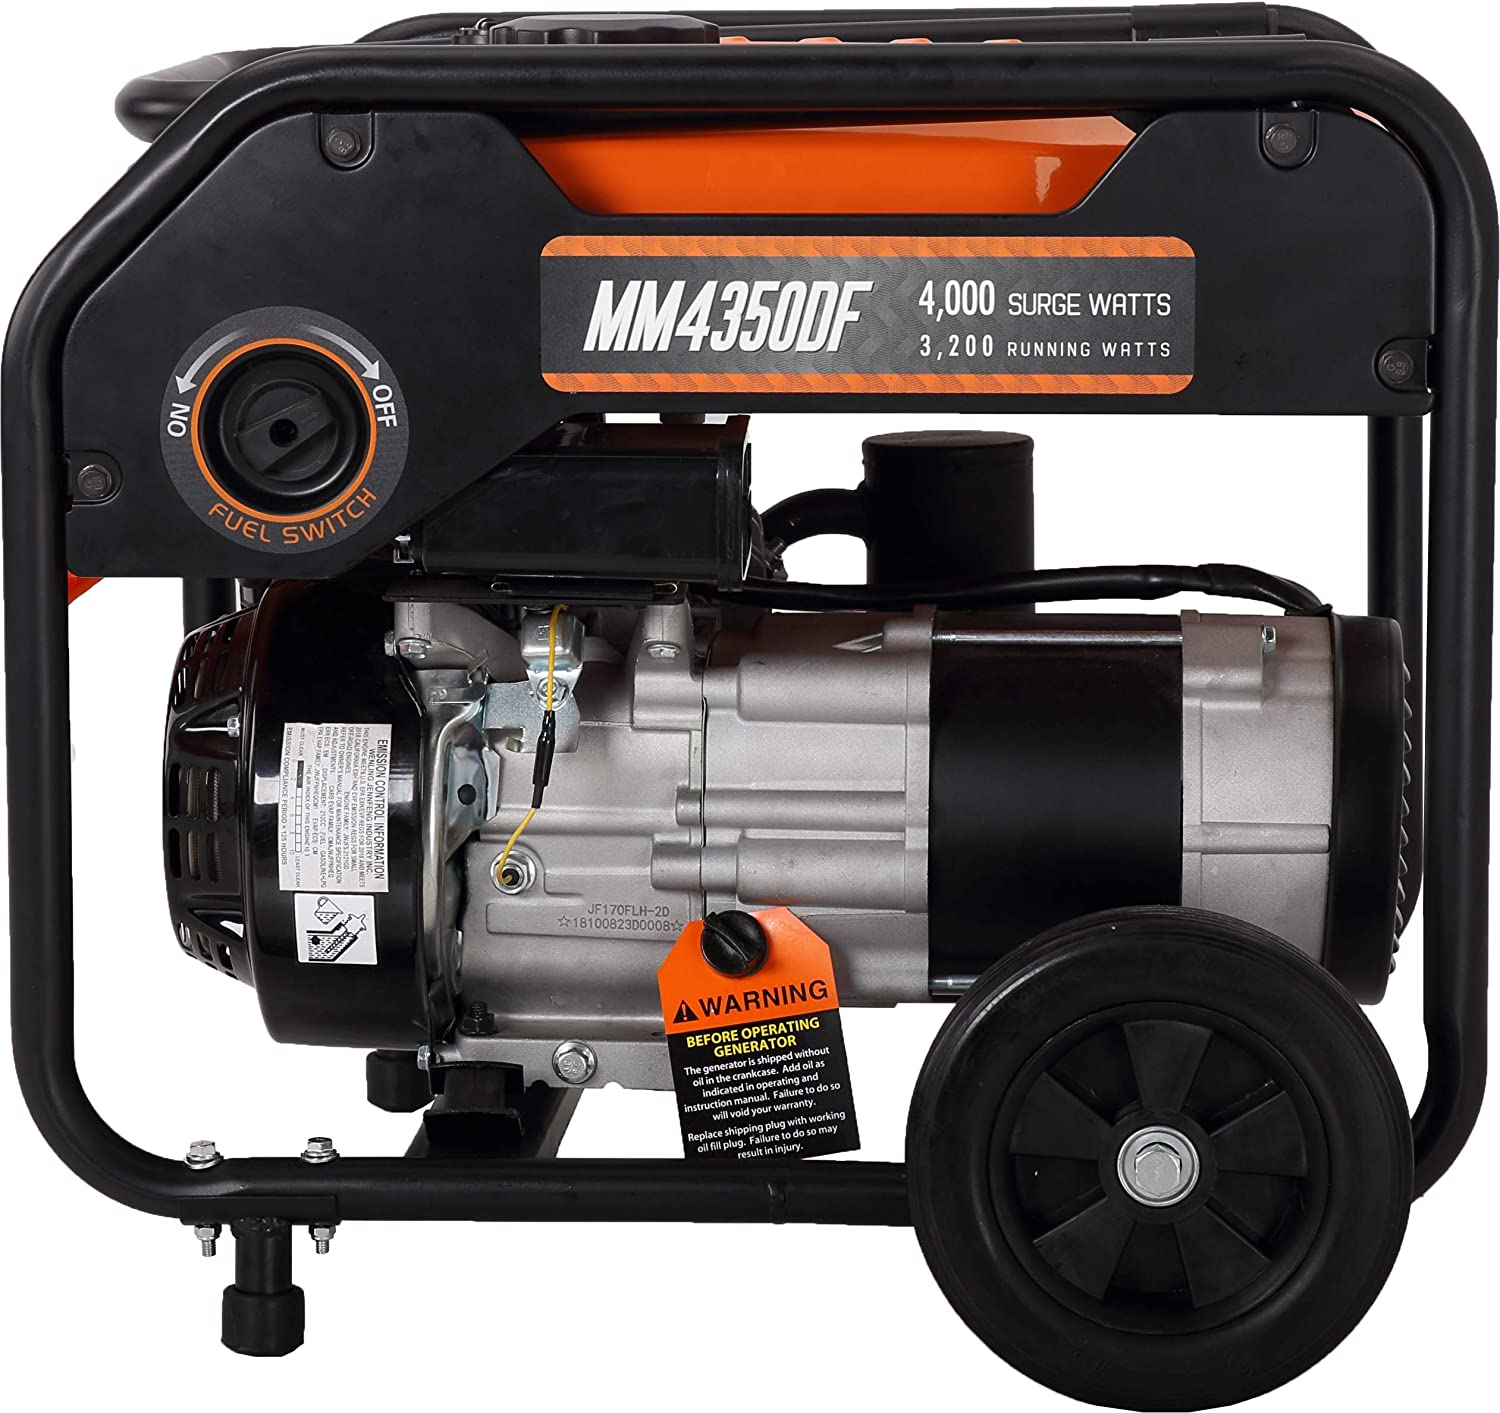 Best Home Generators For Power Outages 2020 (Top 10) 2